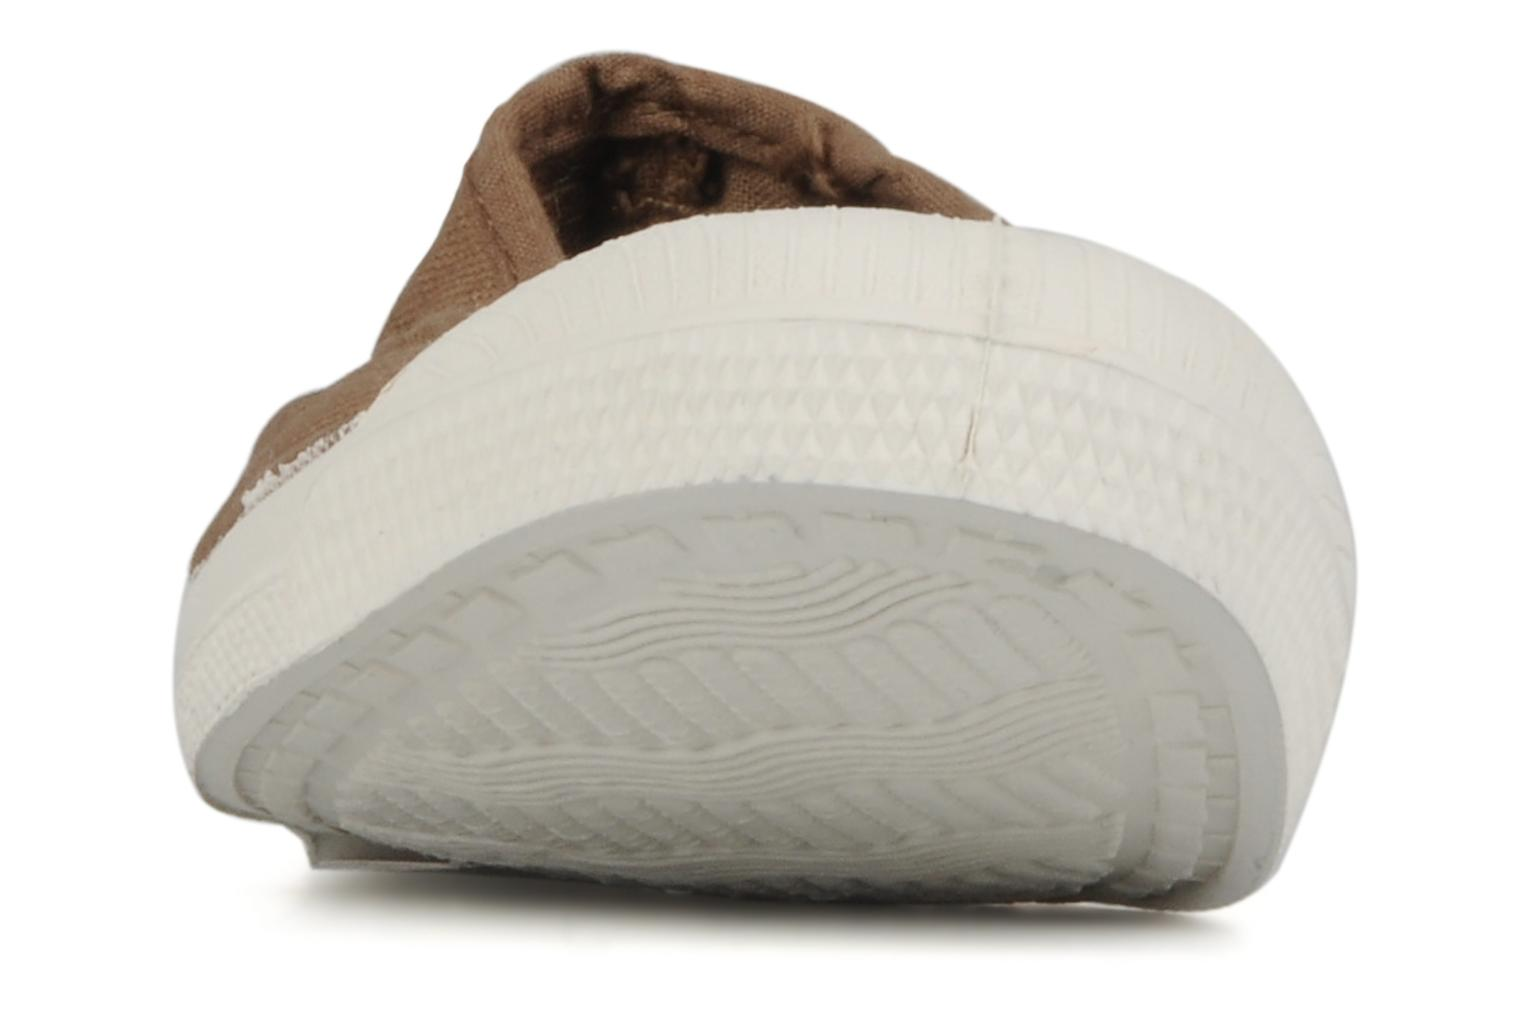 Ballerina's Bensimon Tennis Elastique E Bruin model